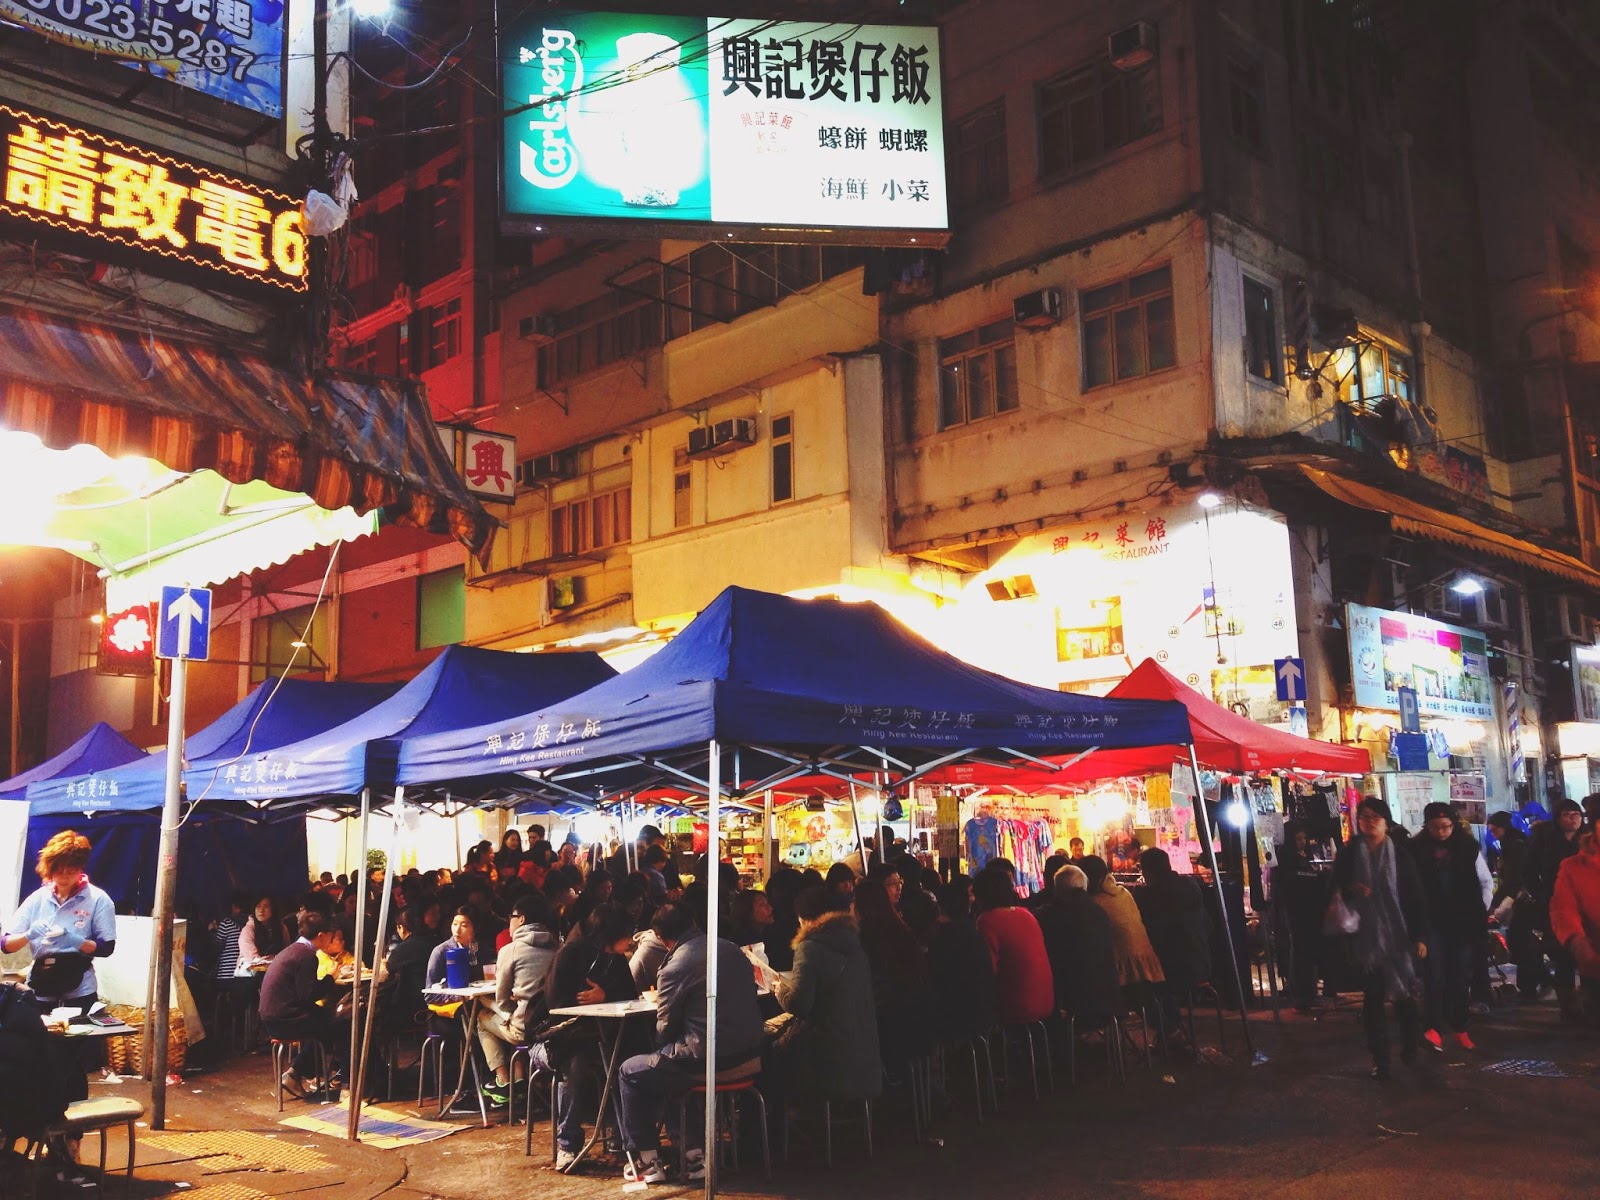 Crowd at Hing Kee Claypot Rice Temple St Yau Ma Tei Hong Kong